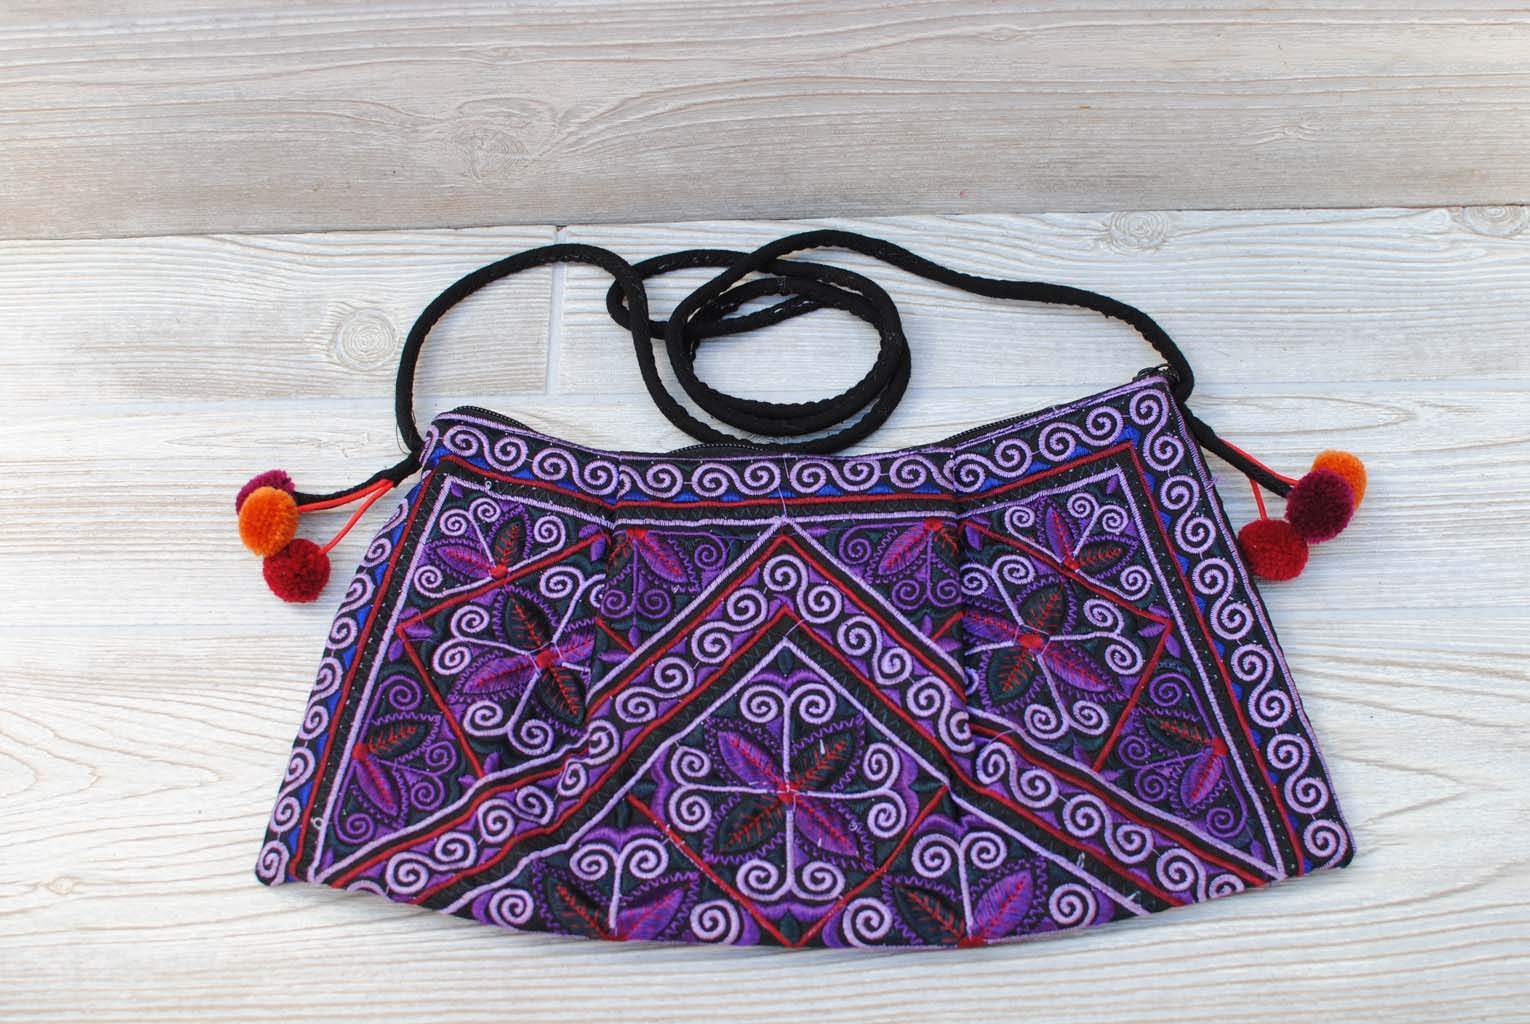 Boho Ethnic Embroidery Bag - Floral Purple